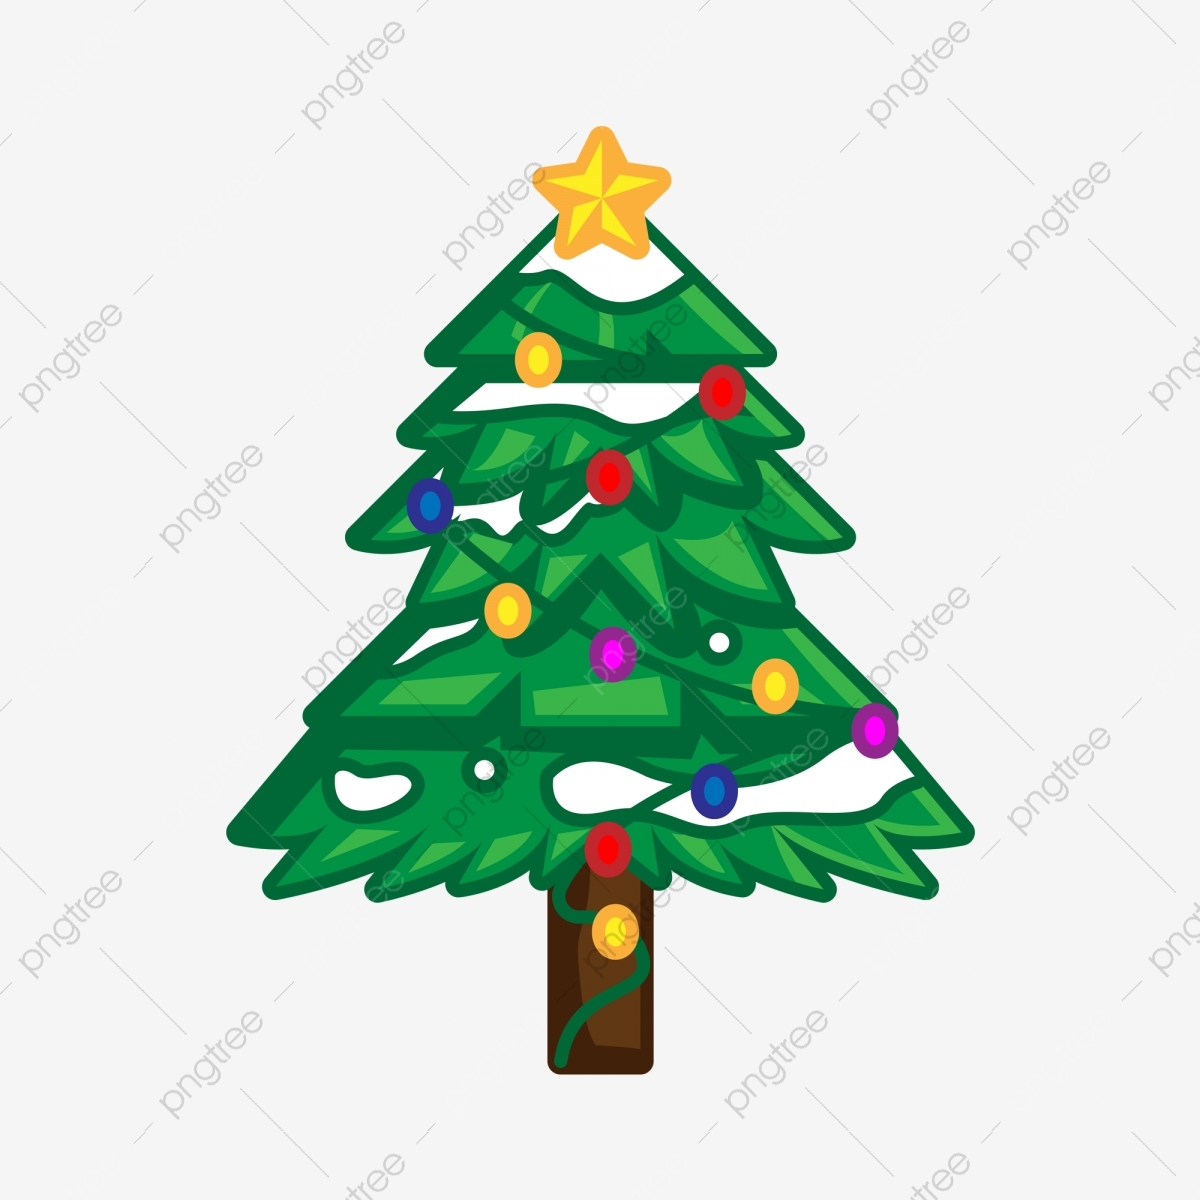 Ai Cartoon Christmas Tree Holiday Material Ai Cartoon Christmas Tree Png And Vector With Transparent Background For Free Download